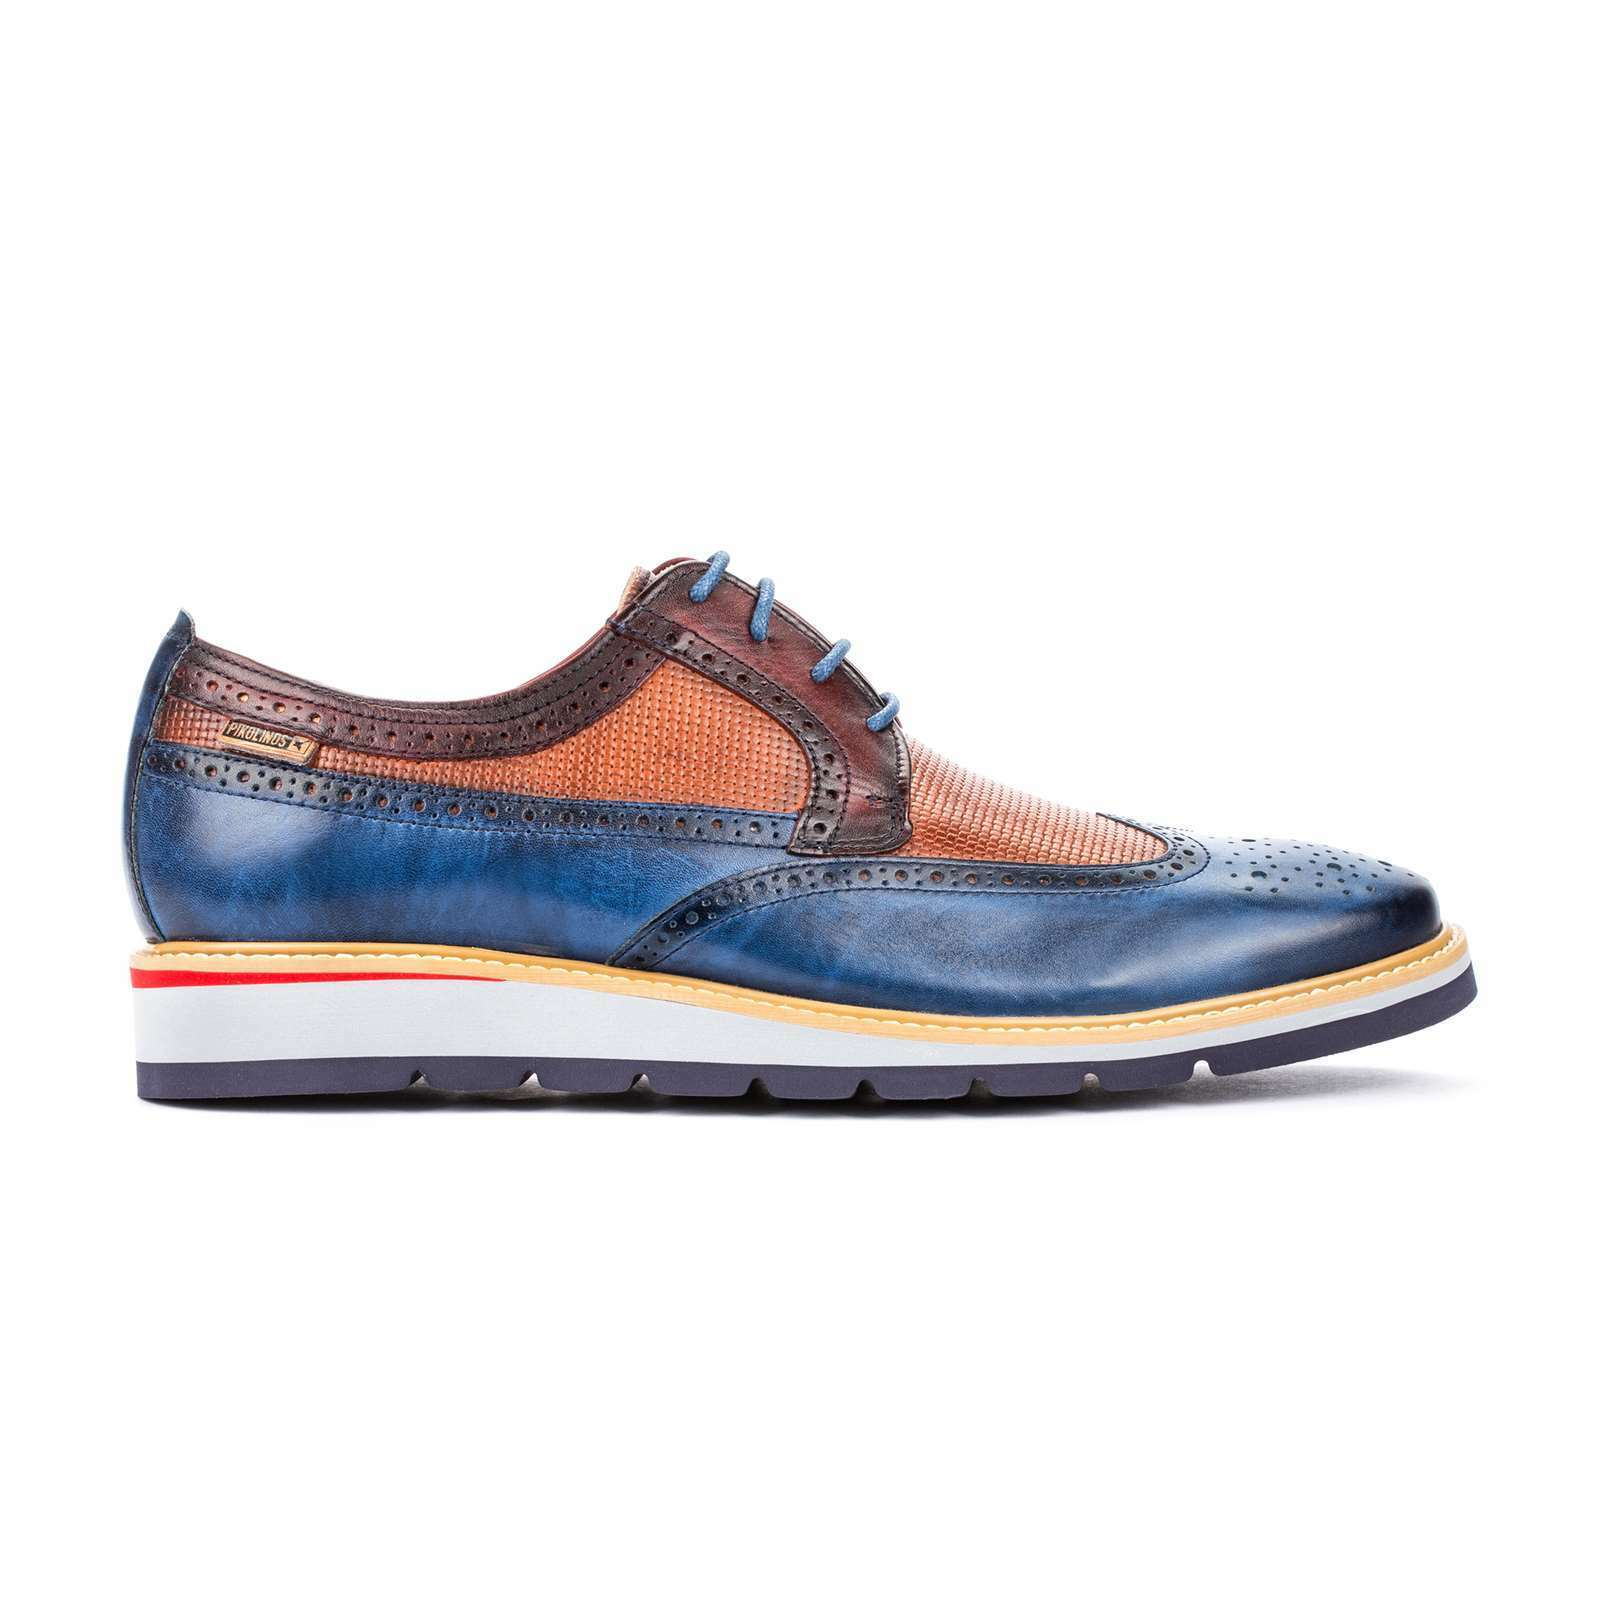 NEW Pikolinos Men's Men's Men's Casual Dress Comfort Toulouse Leather Lace Up Oxford scarpe 6ffccb